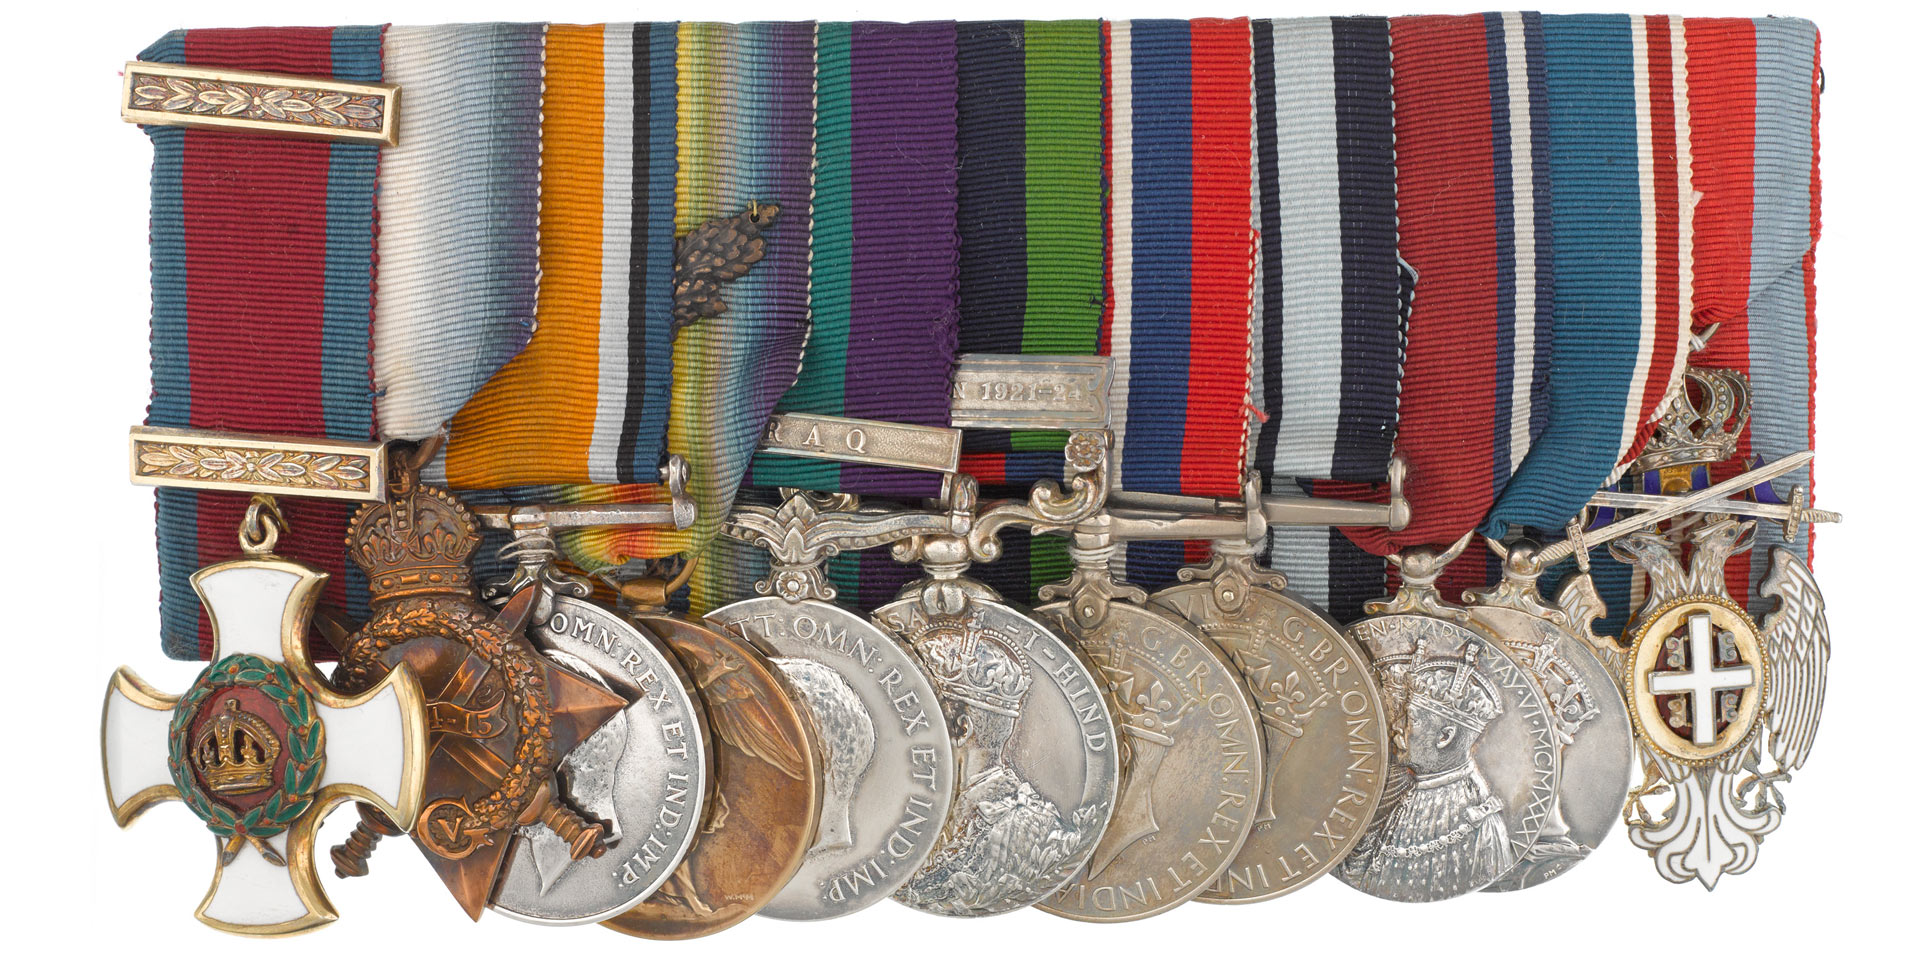 Distinguished Service Order (left) and campaign medals awarded to Captain Heerajee Cursetjee, 1914-46